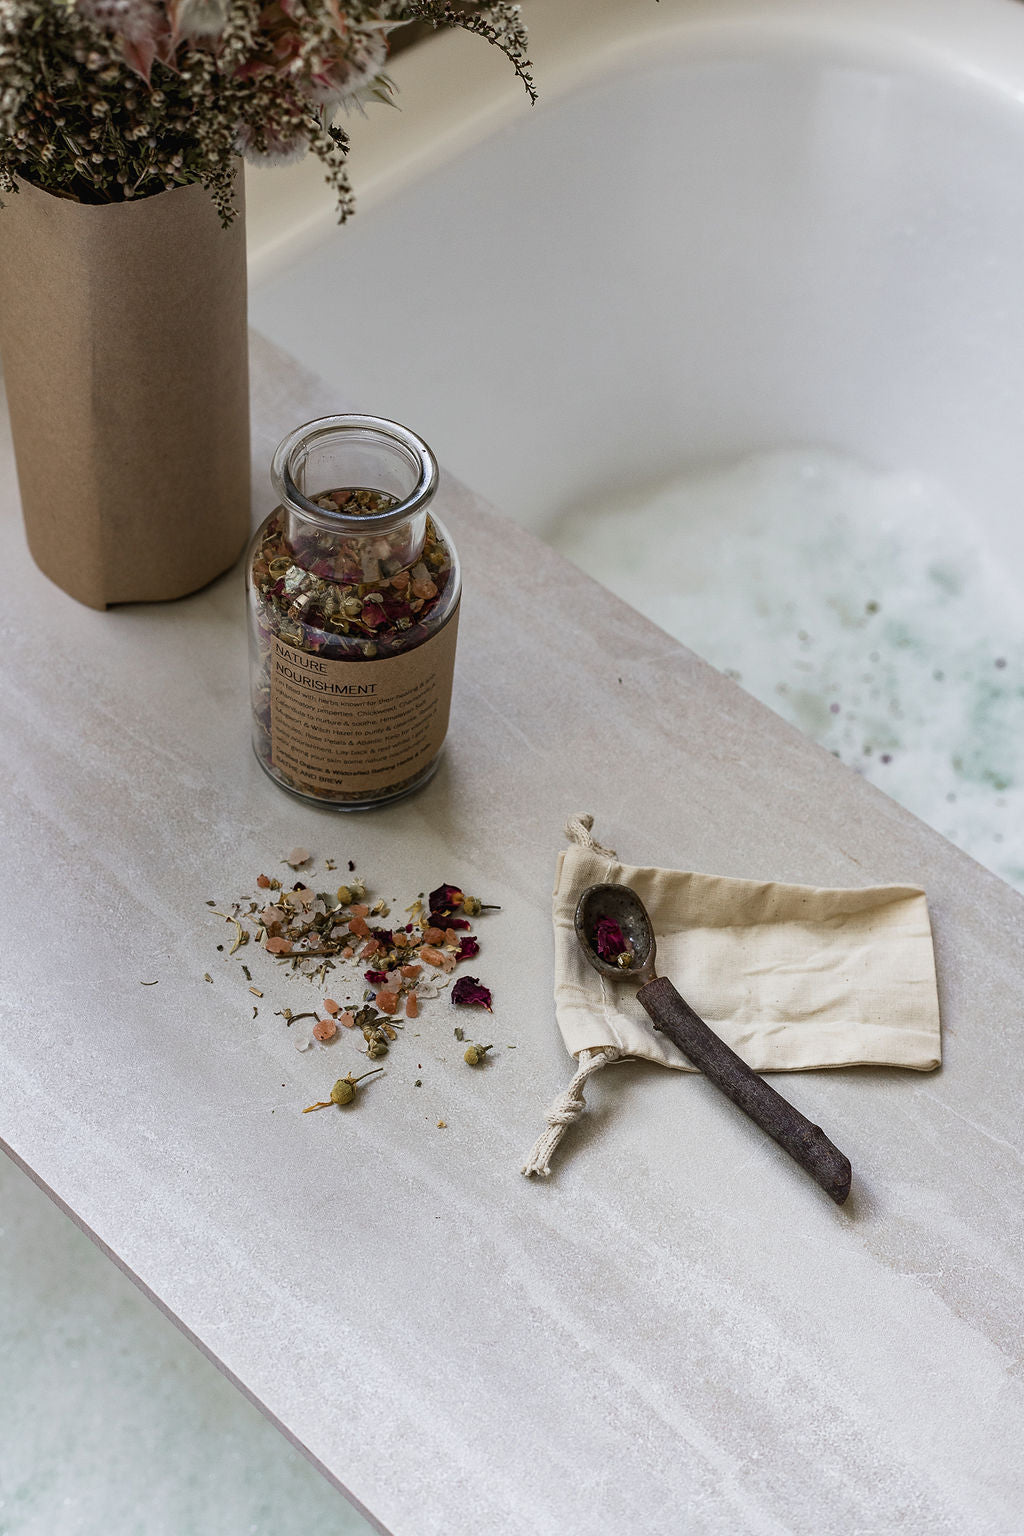 'Nature's Nourishment' Bath Brew